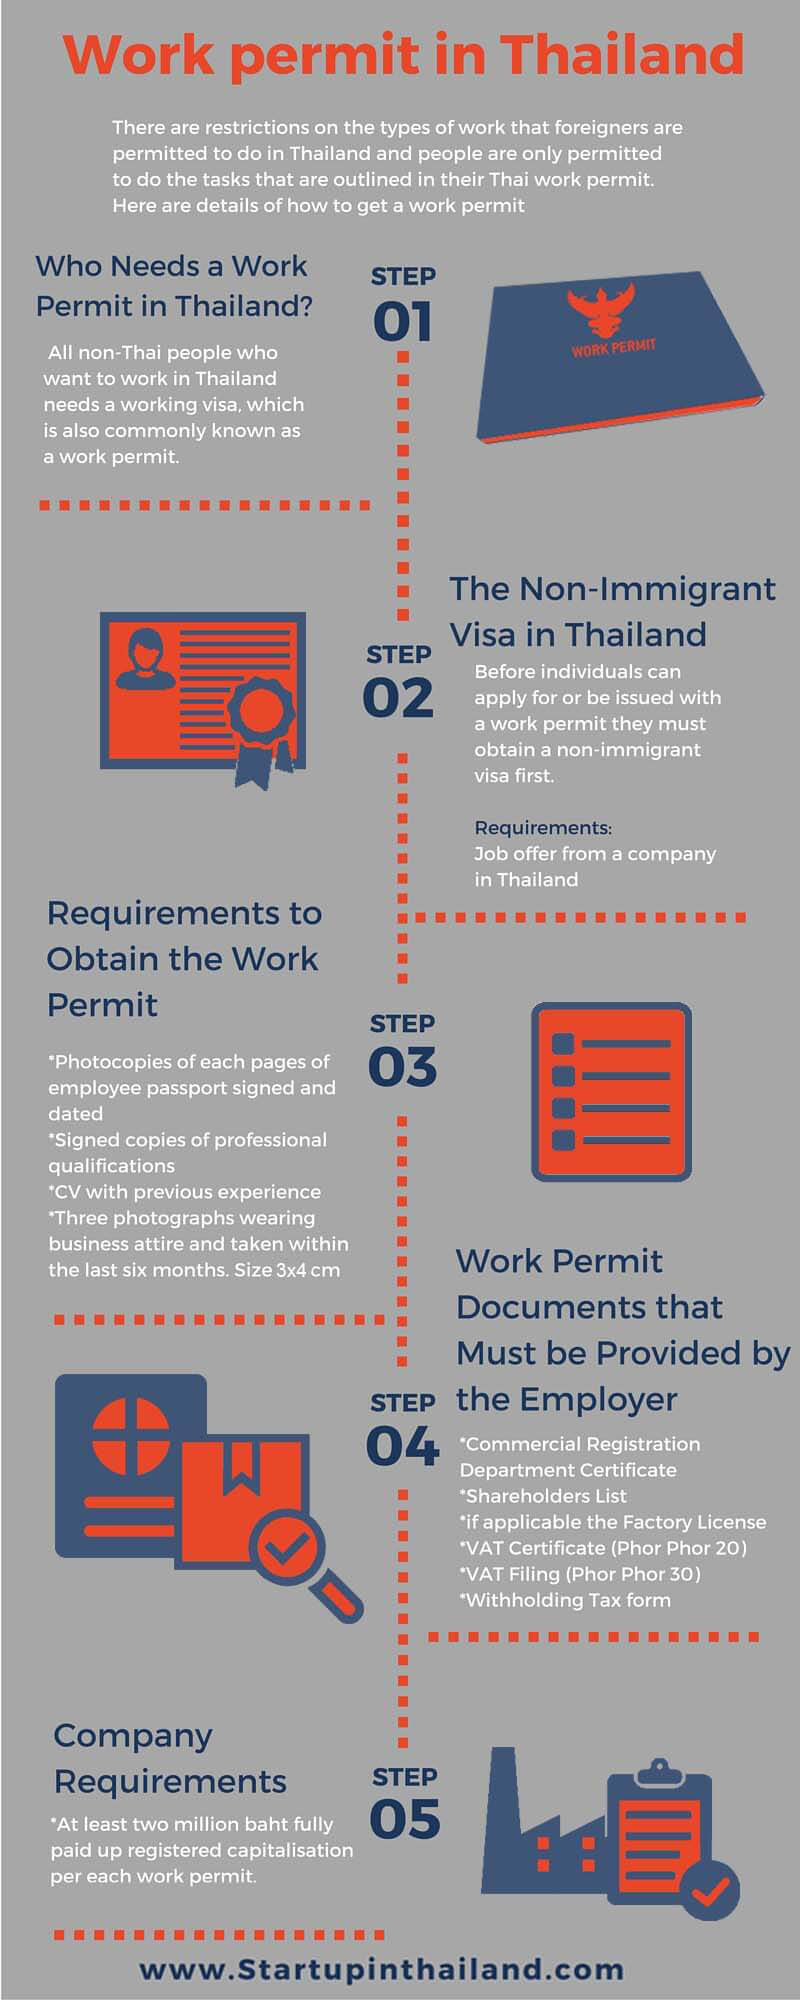 An infographic of Thailand's work permit step by step flow process